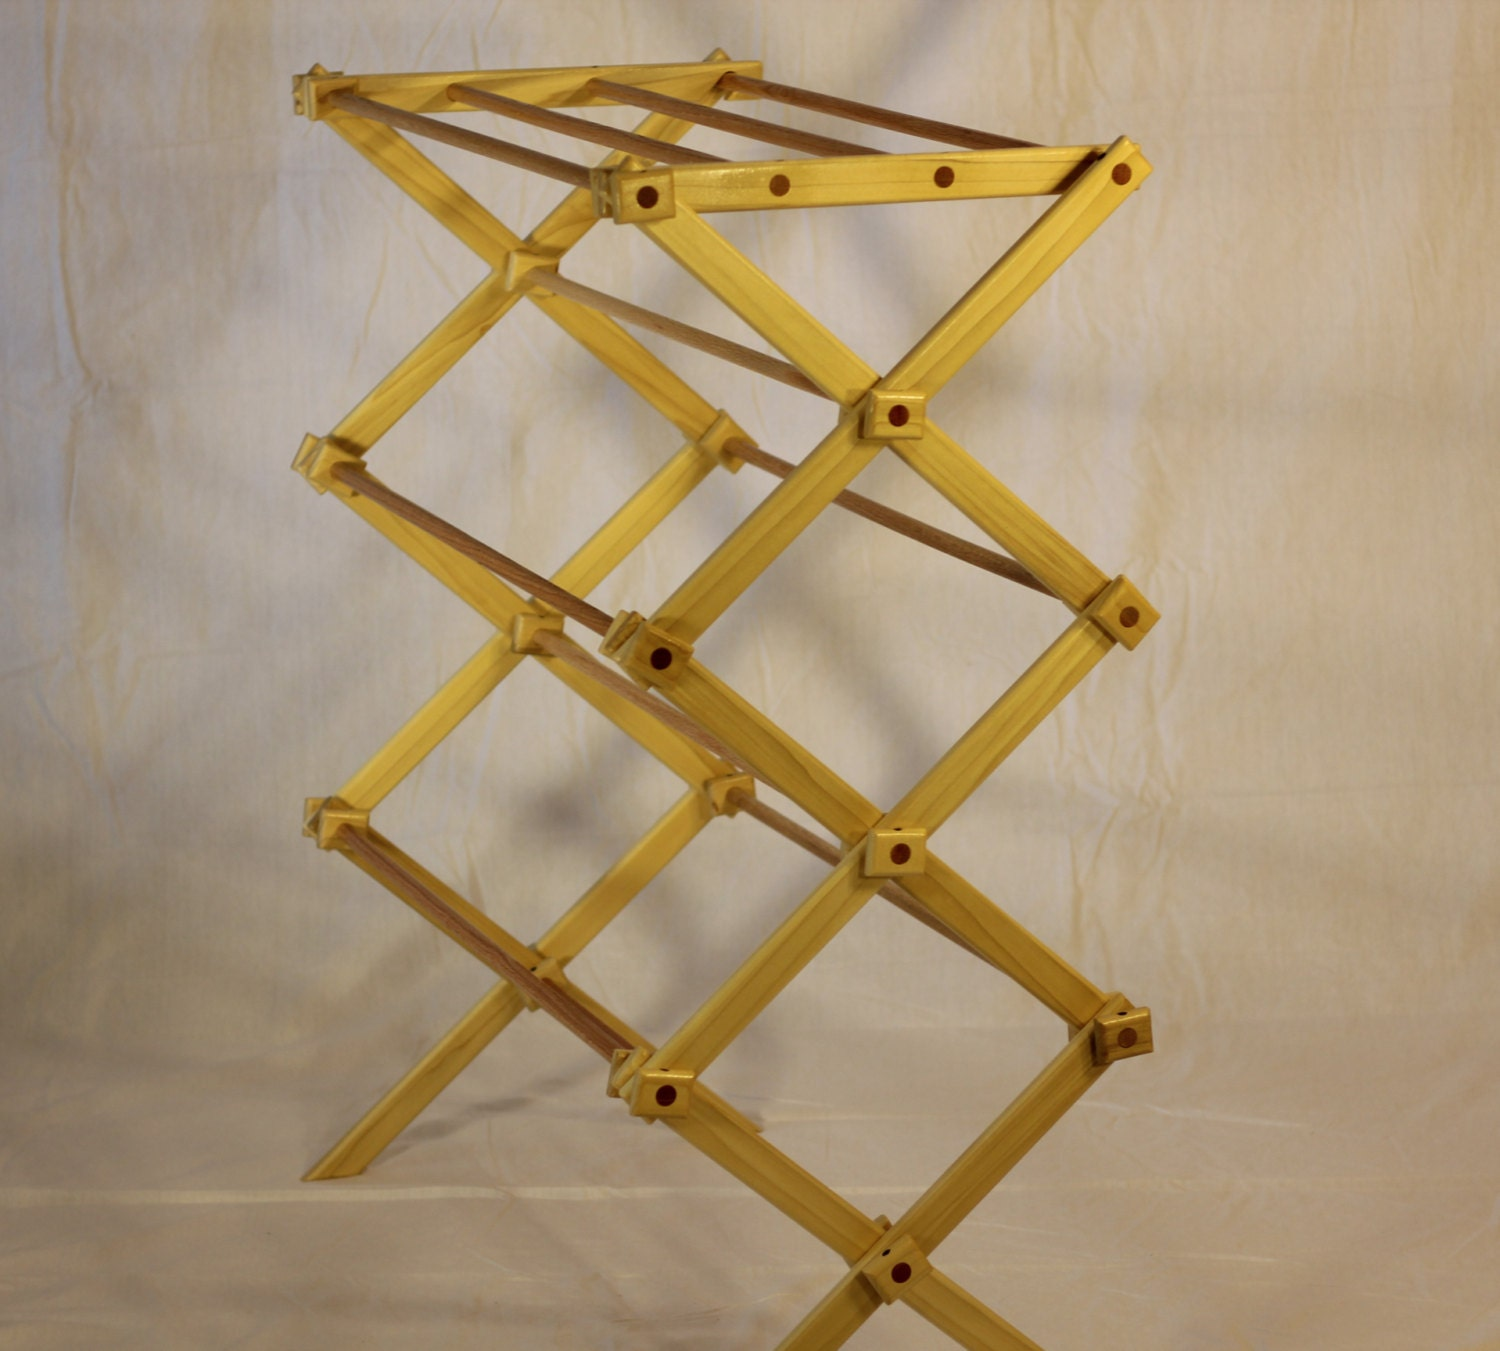 Clothes Drying Rack Made Of Wood